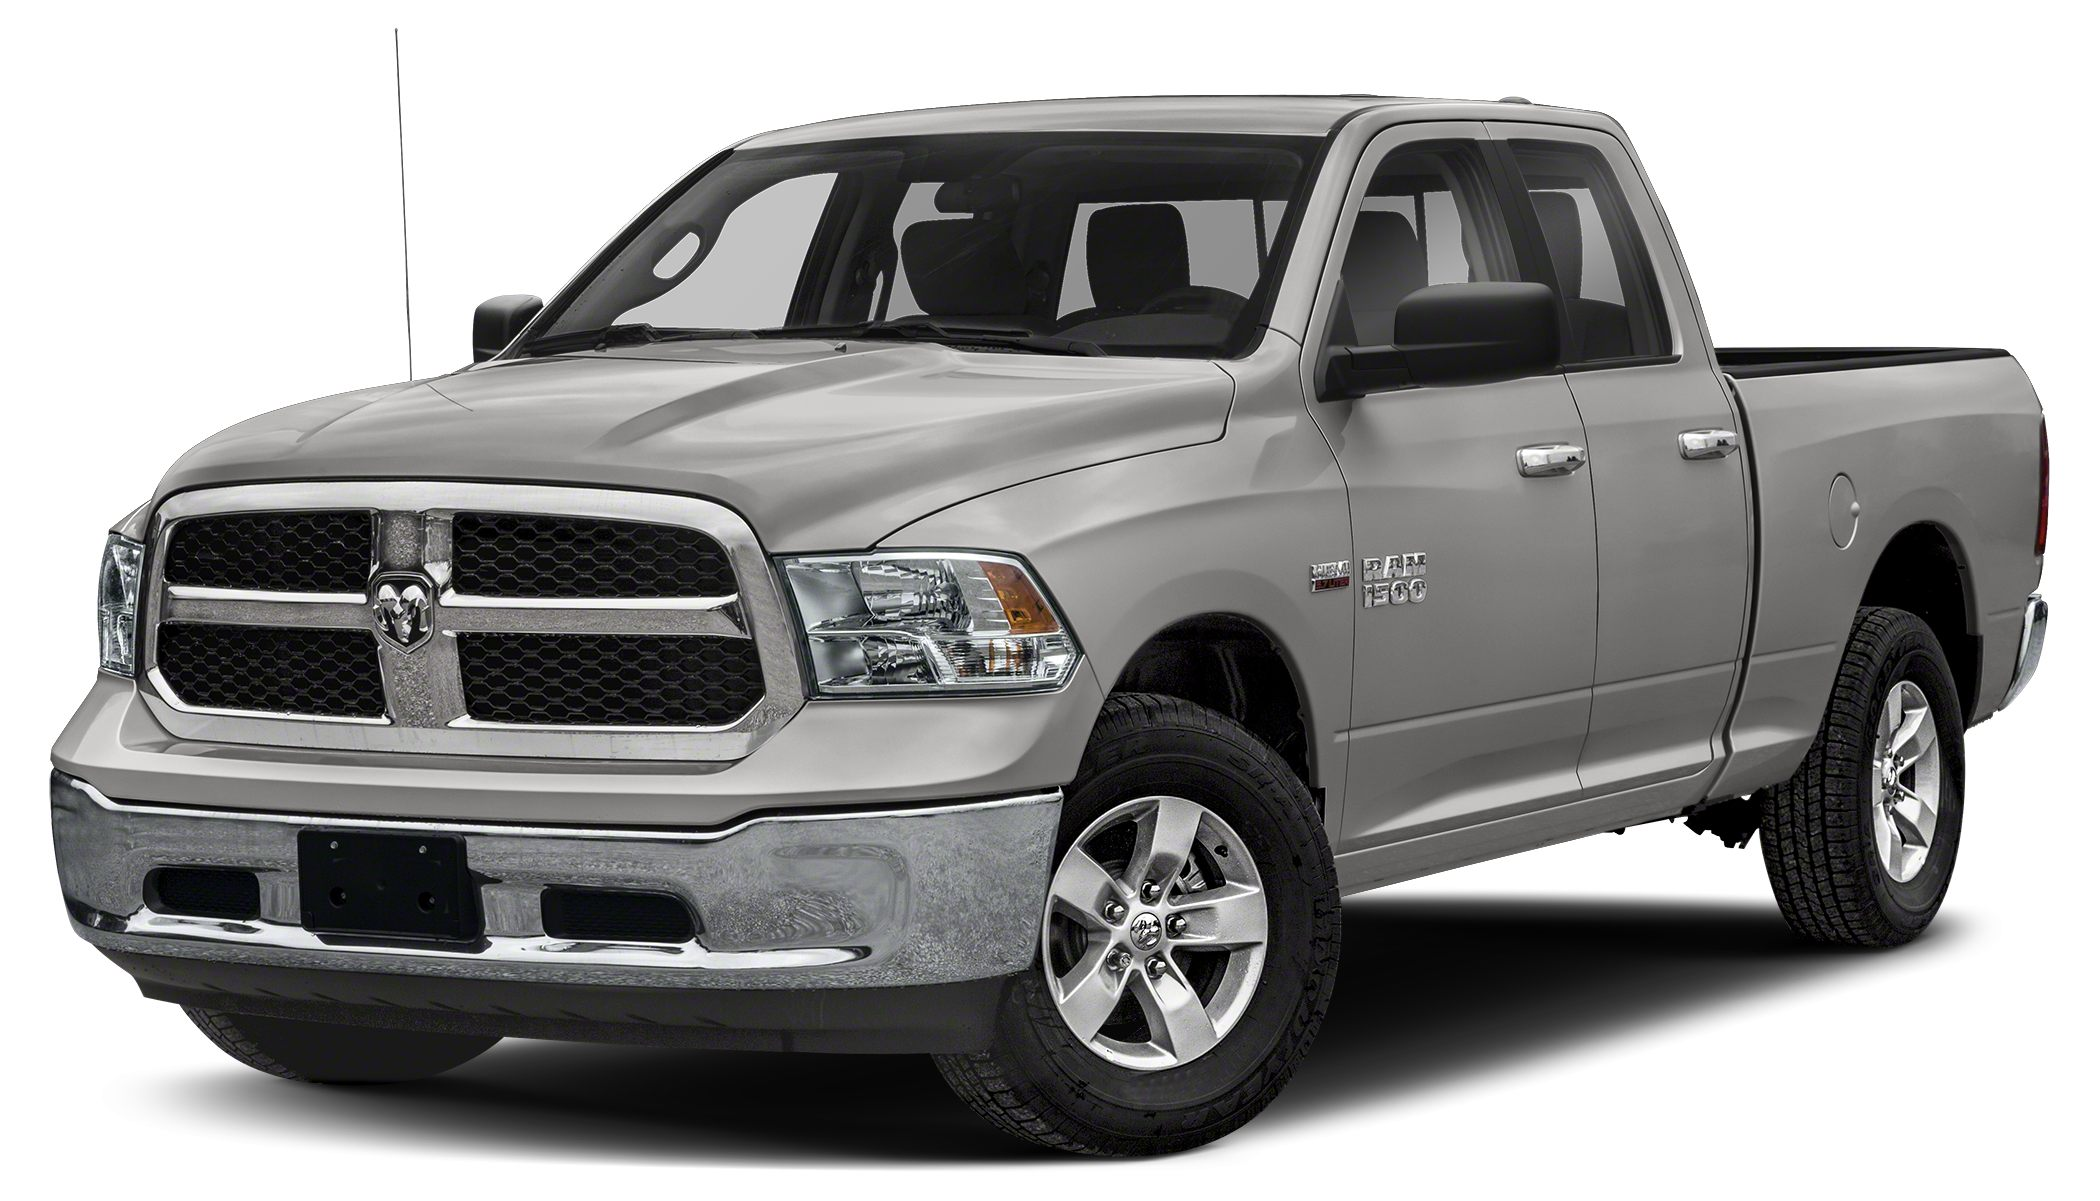 2016 RAM 1500 SLT Recent Arrival AS NEW CONDITION POWER CENTRAL LOCKING WITH REMOTE POWER